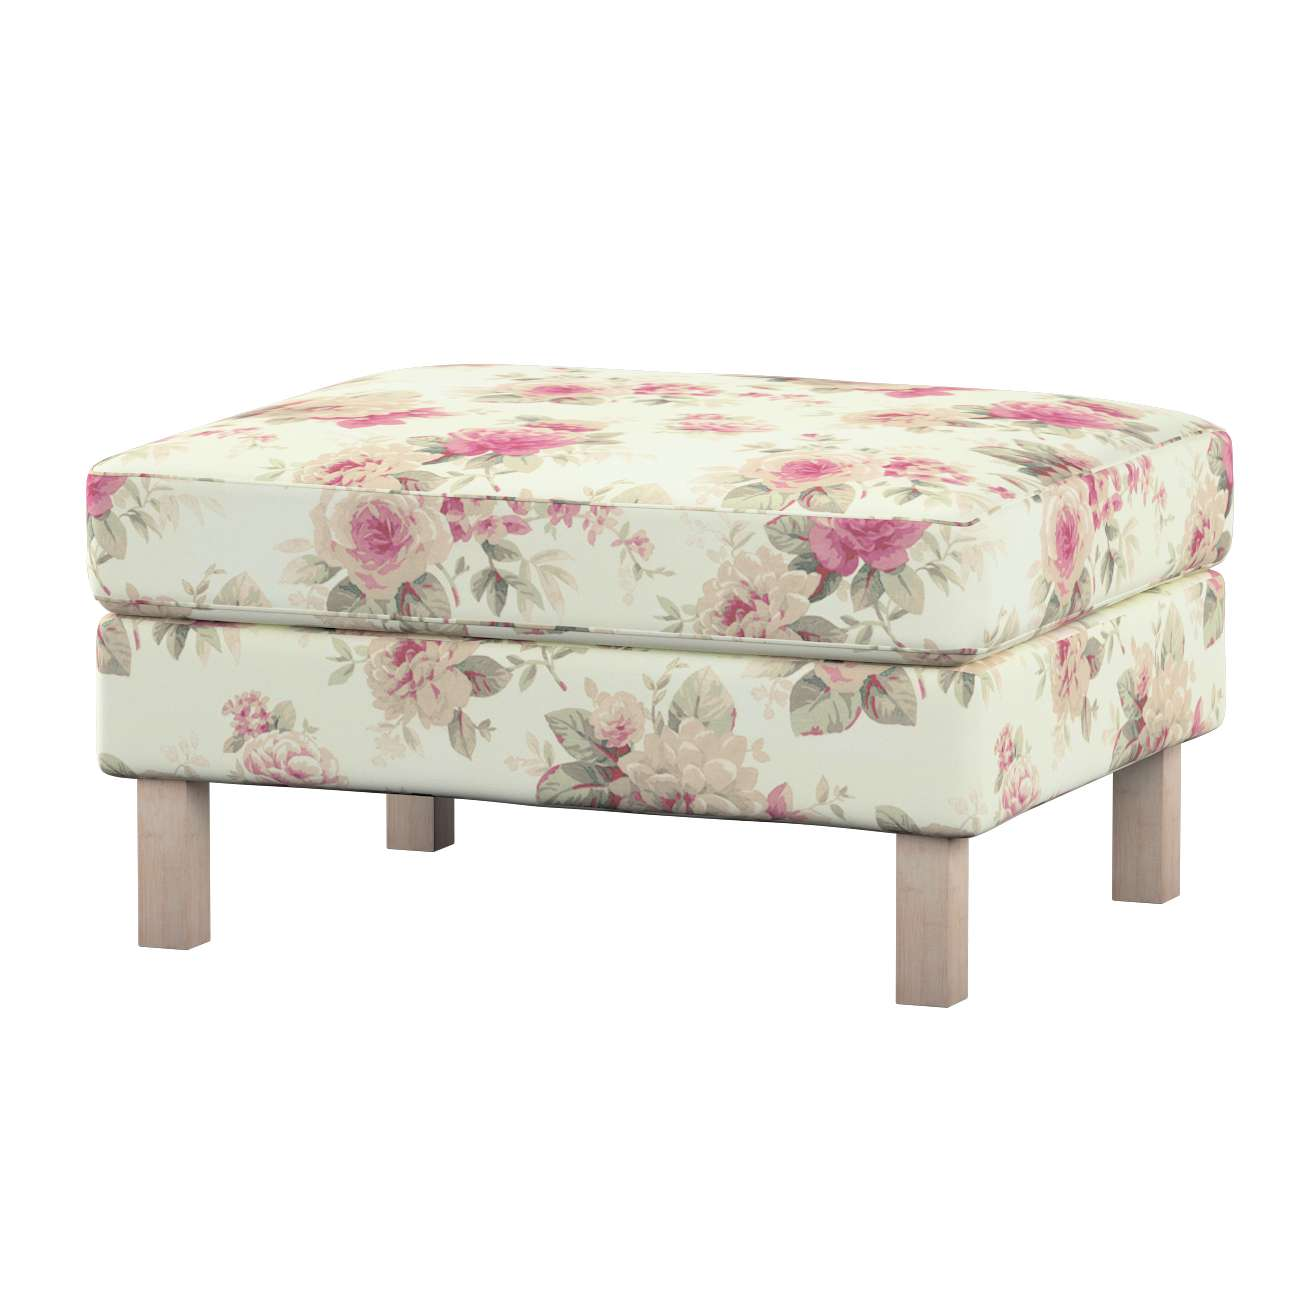 Karlstad footstool cover Karlstad footstool cover in collection Mirella, fabric: 141-07